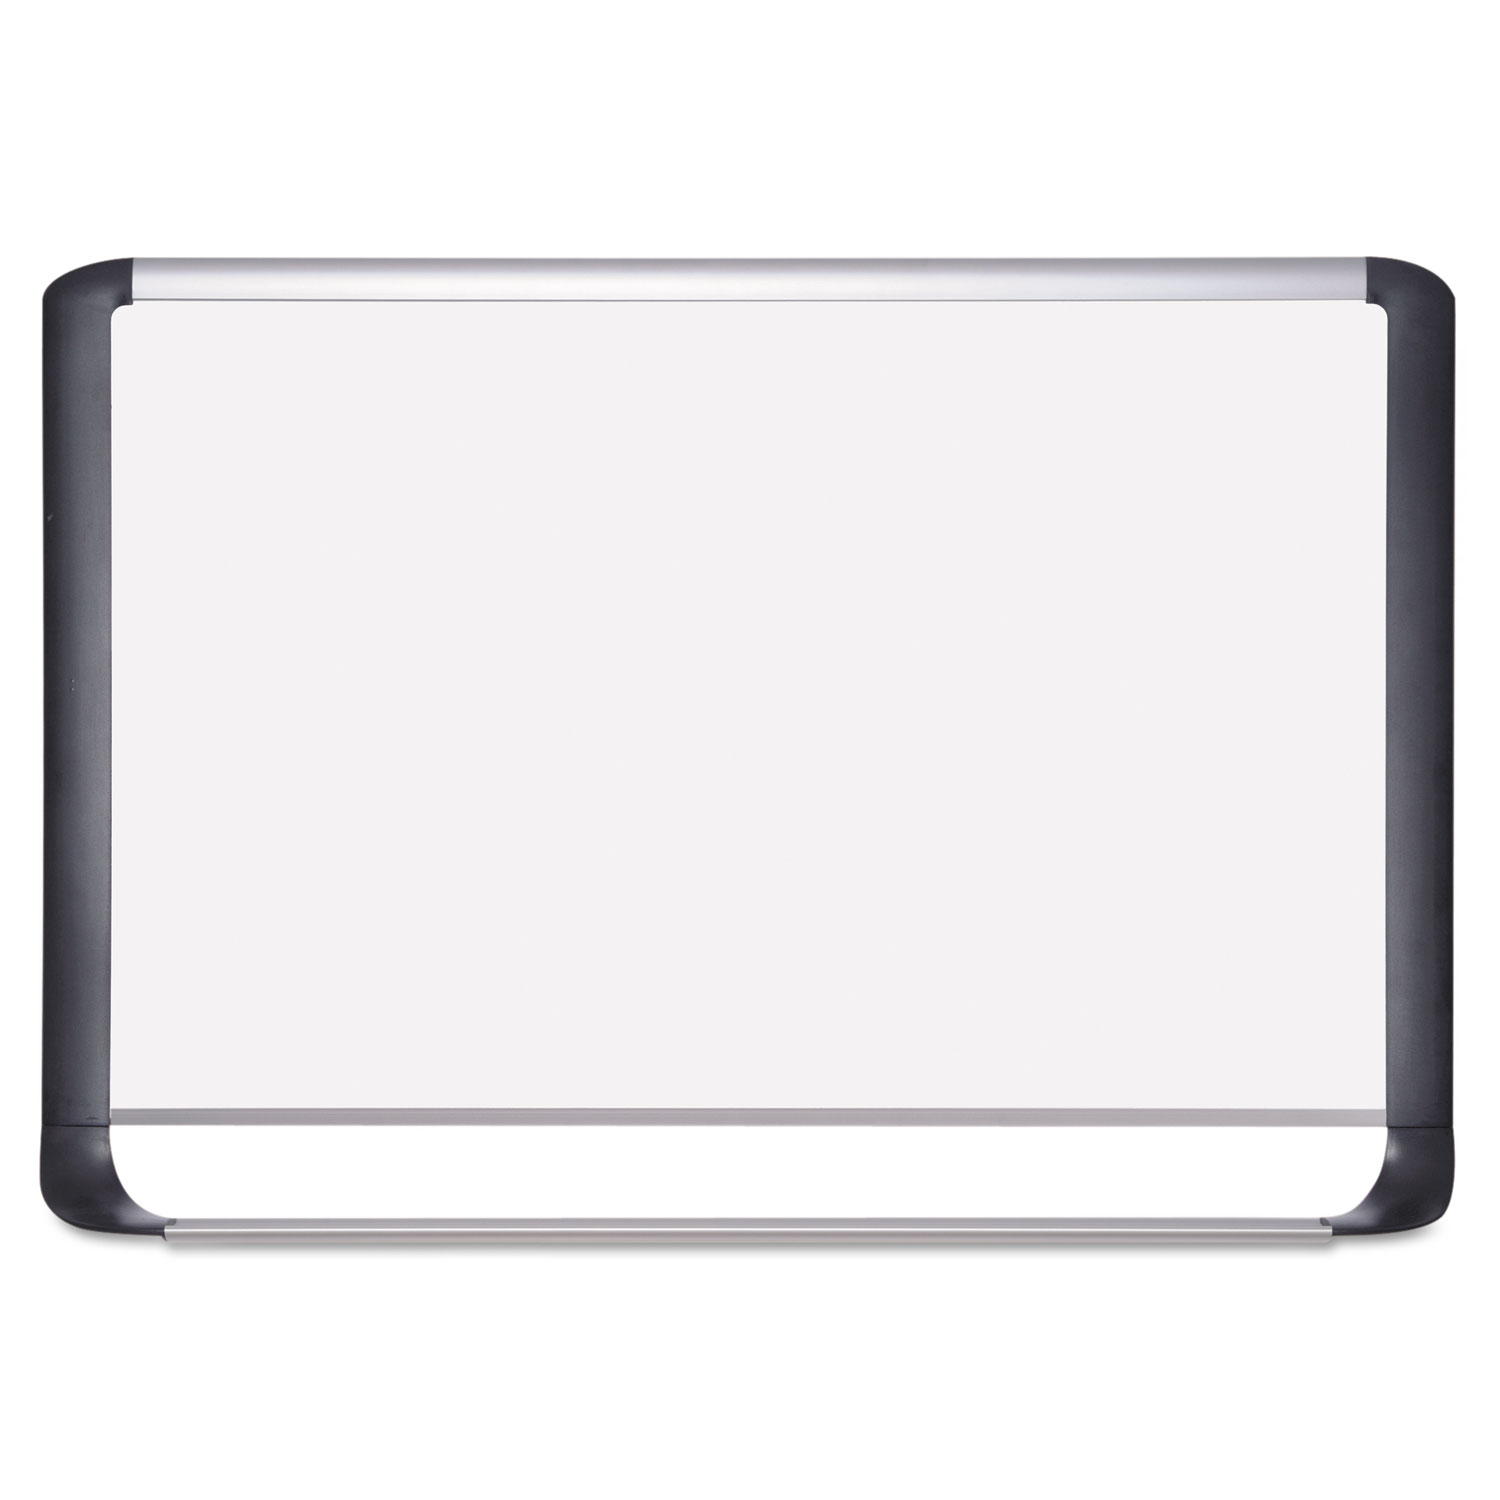 Lacquered steel magnetic dry erase board, 36 x 48, Silver/Black